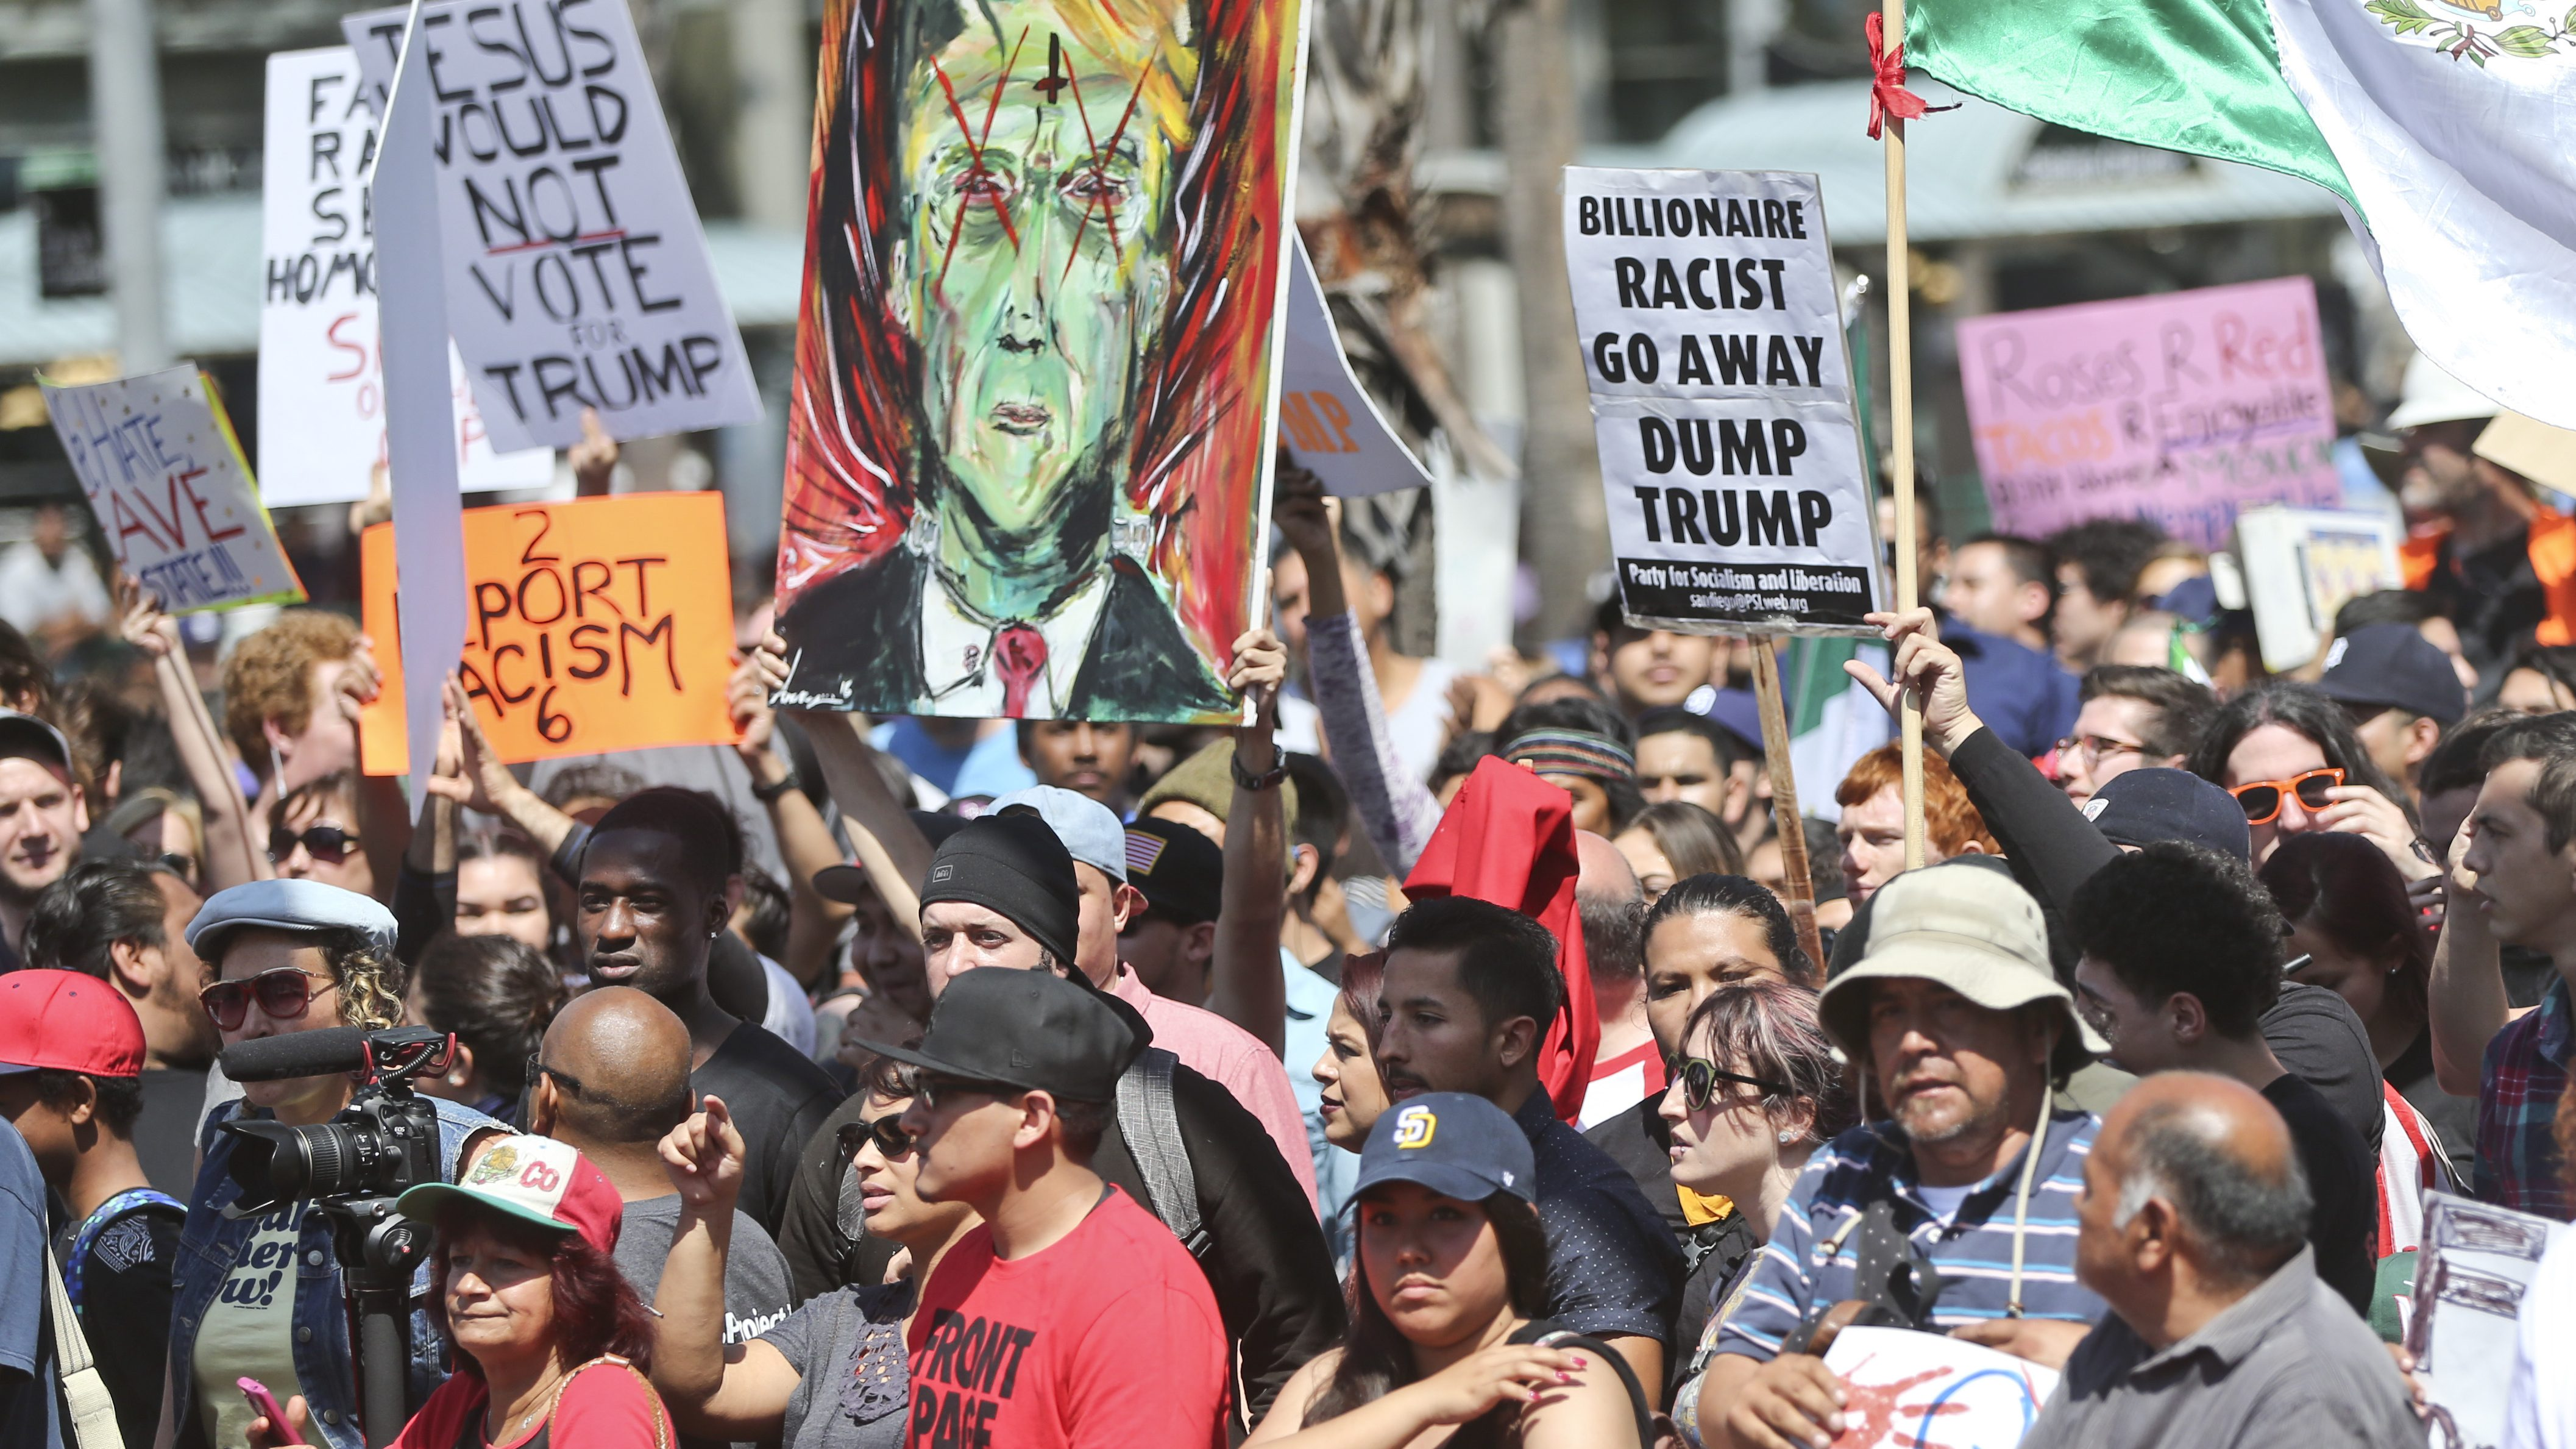 A crowd of anti-Trump demonstrators gather in front of the San Diego Convention Center.